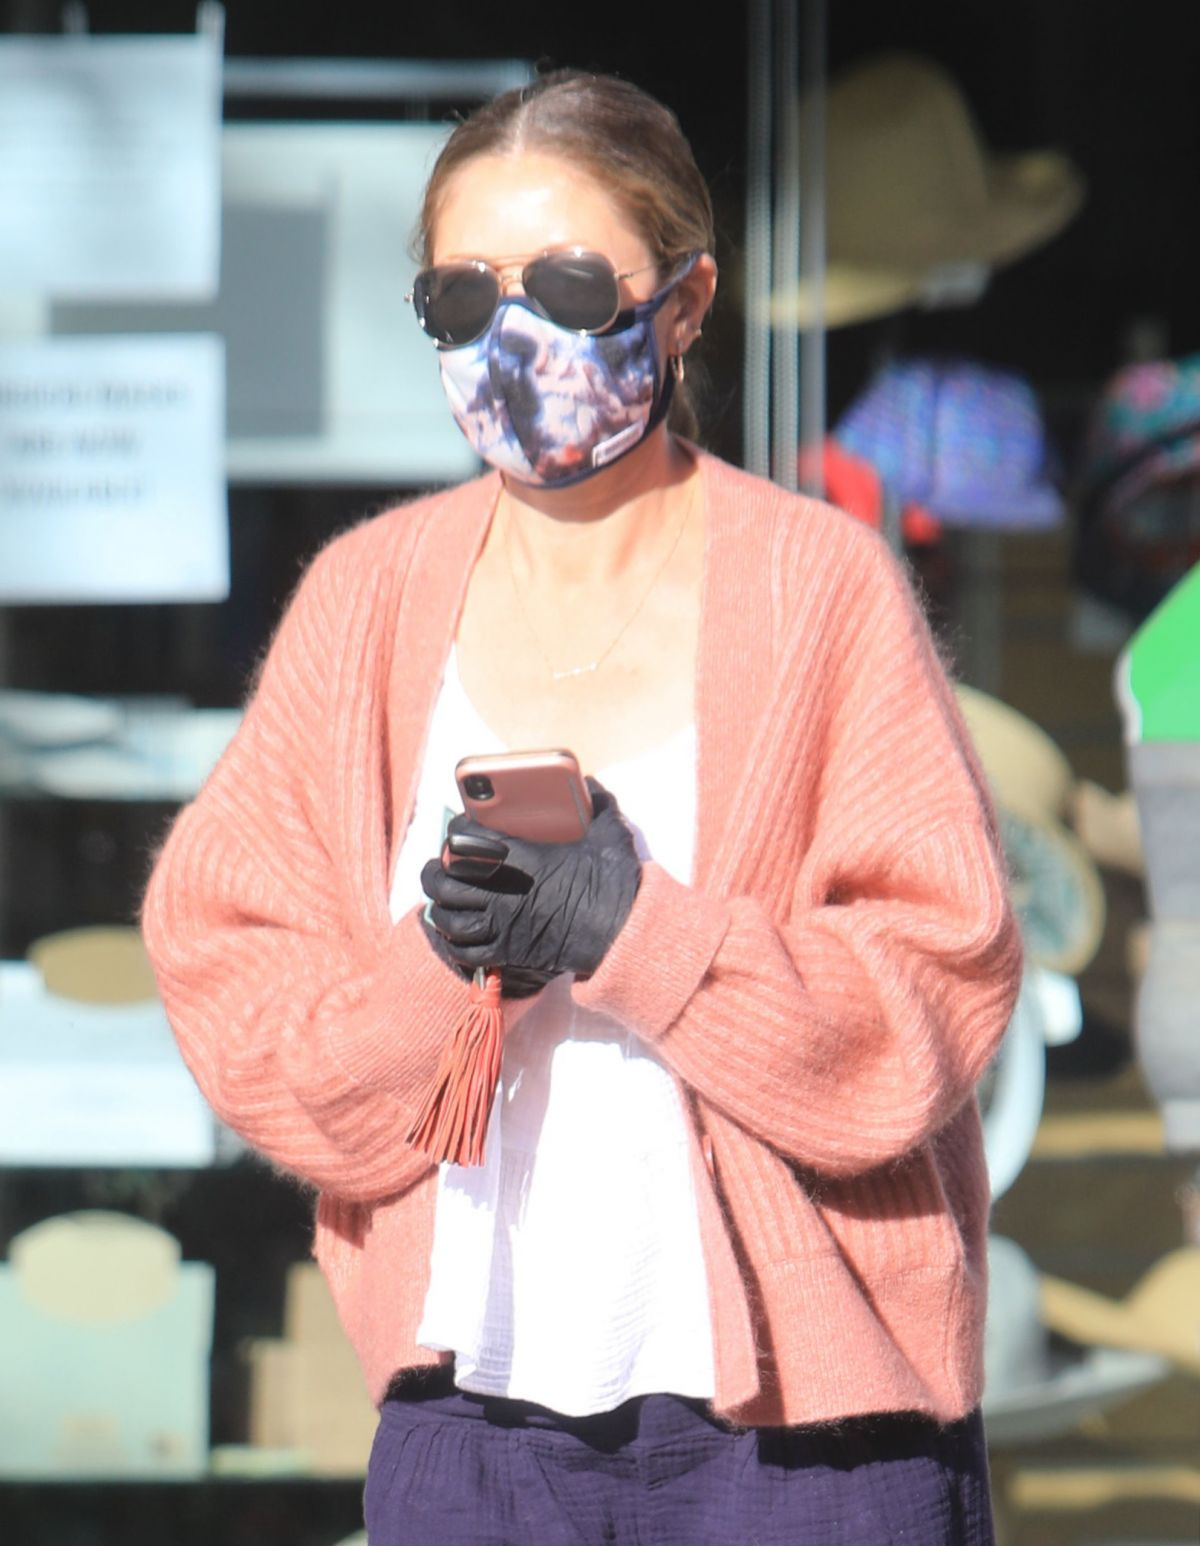 Rebecca Gayheart Wearing Mask and Gloves Out in Bevery Hills, 05.06.2020 8